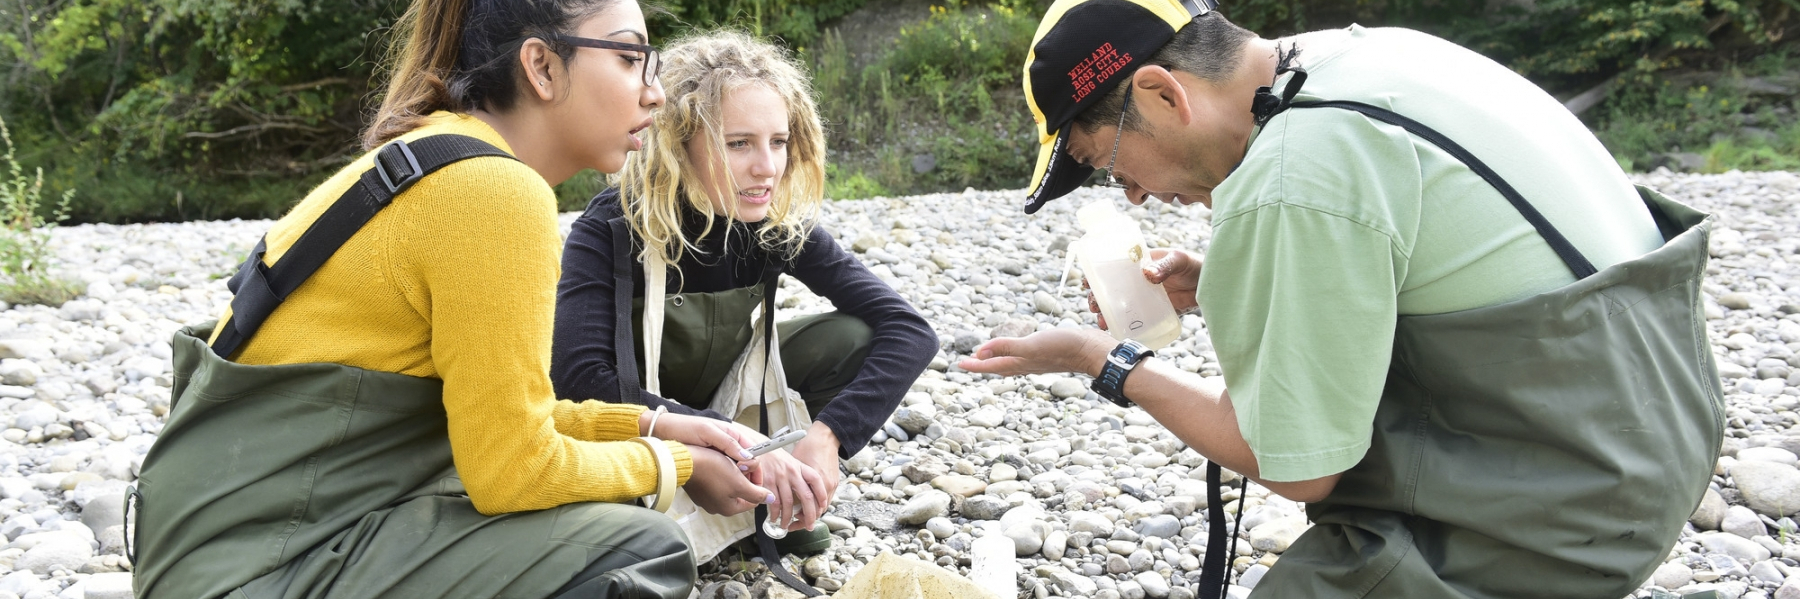 students in on a river shore